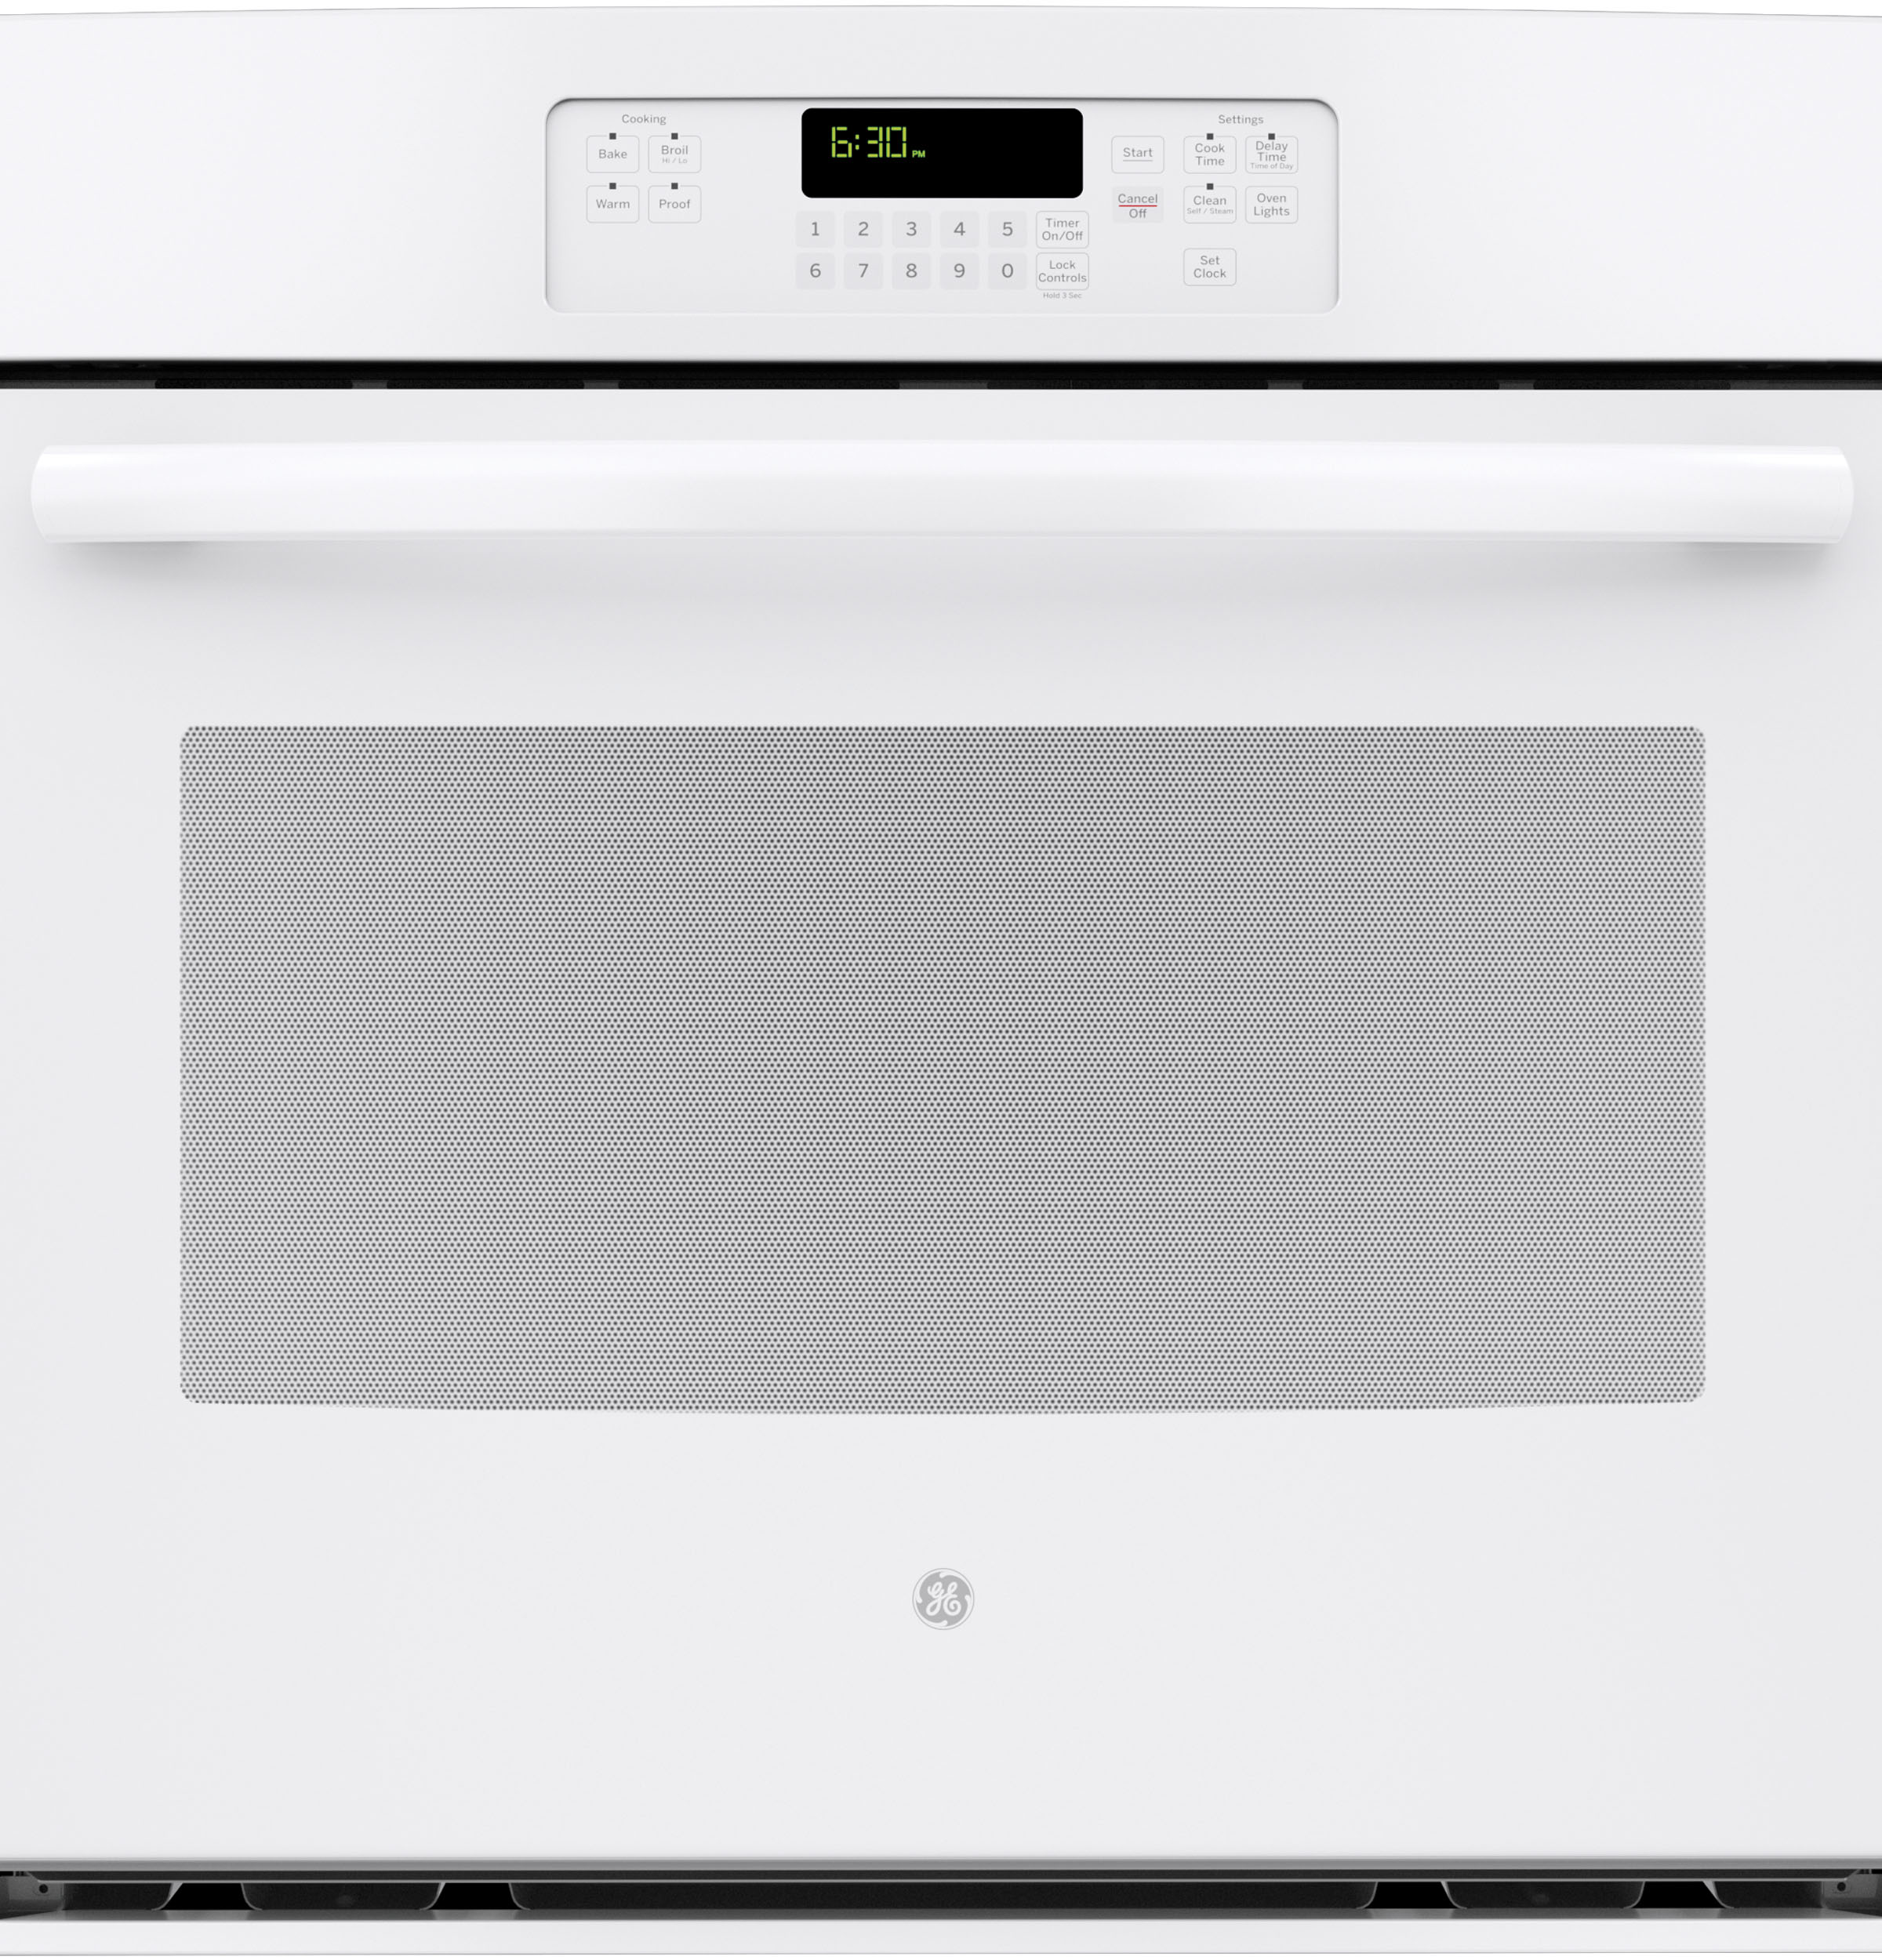 Ge 30 Built In Single Wall Oven Jt3000 Ada Appliances Microwave Wiring Diagram